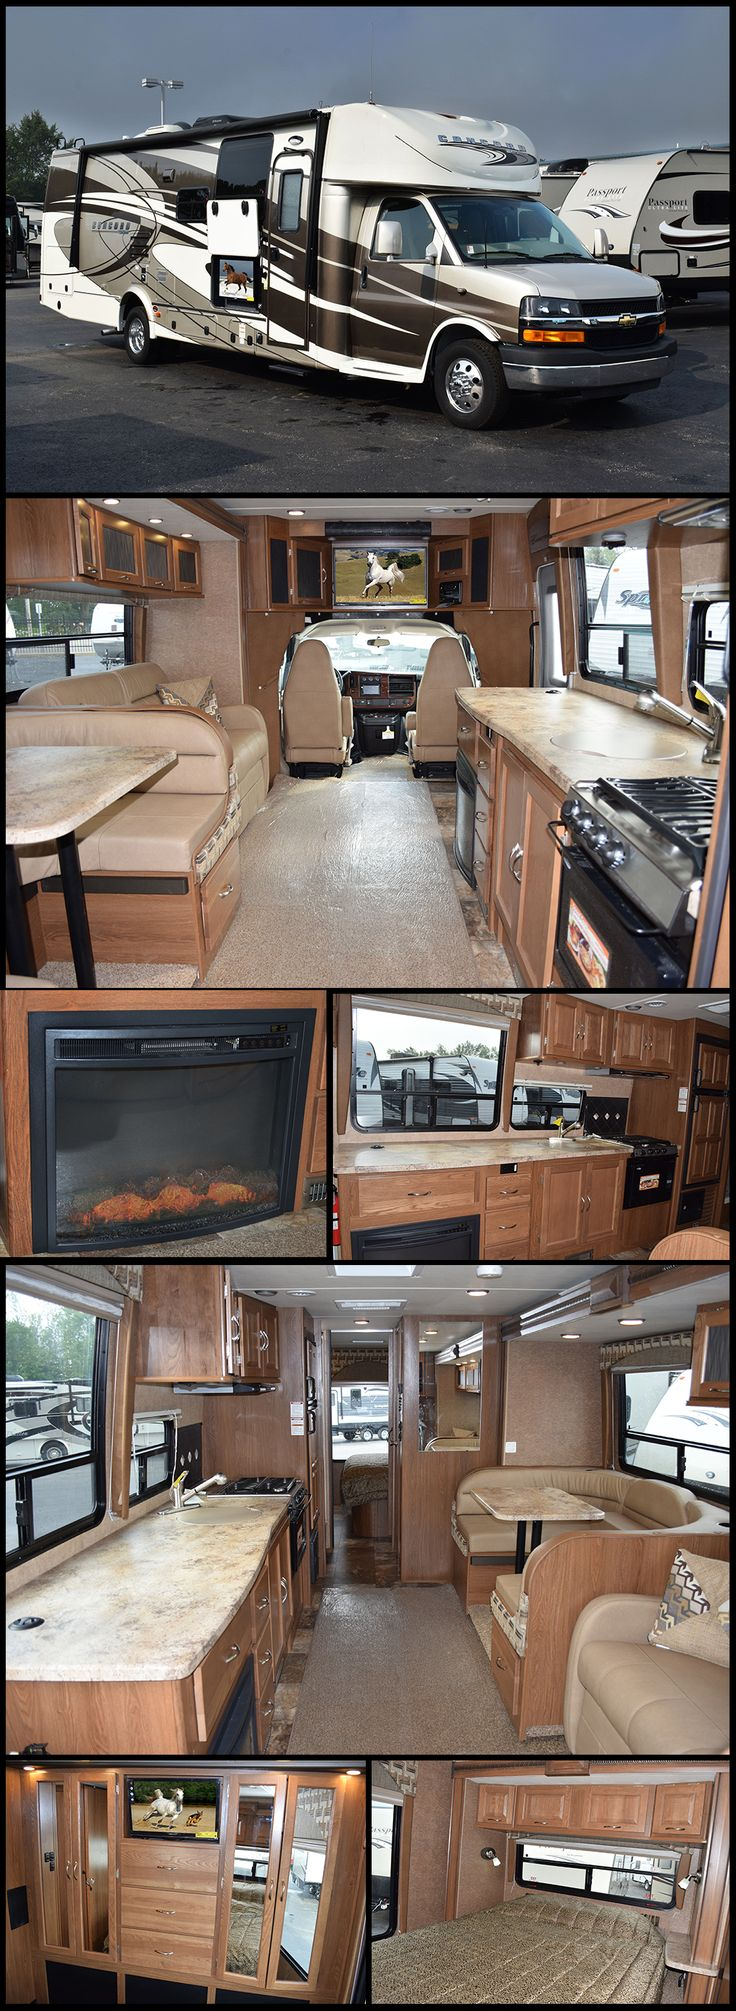 """The 2016 COACHMEN CONCORD 300DSC provides a luxurious and convenient solution to both traveling and RVing. This smart travel minded Class C is equipped and built with an attitude of providing the """"best"""" in form, fit and function. Outside the Concord boasts curved sidewalls with sleek stylish front and rear fiberglass caps that give the Coachmen Concord a distinctive high-end look and an aerodynamic, easy to drive profile."""